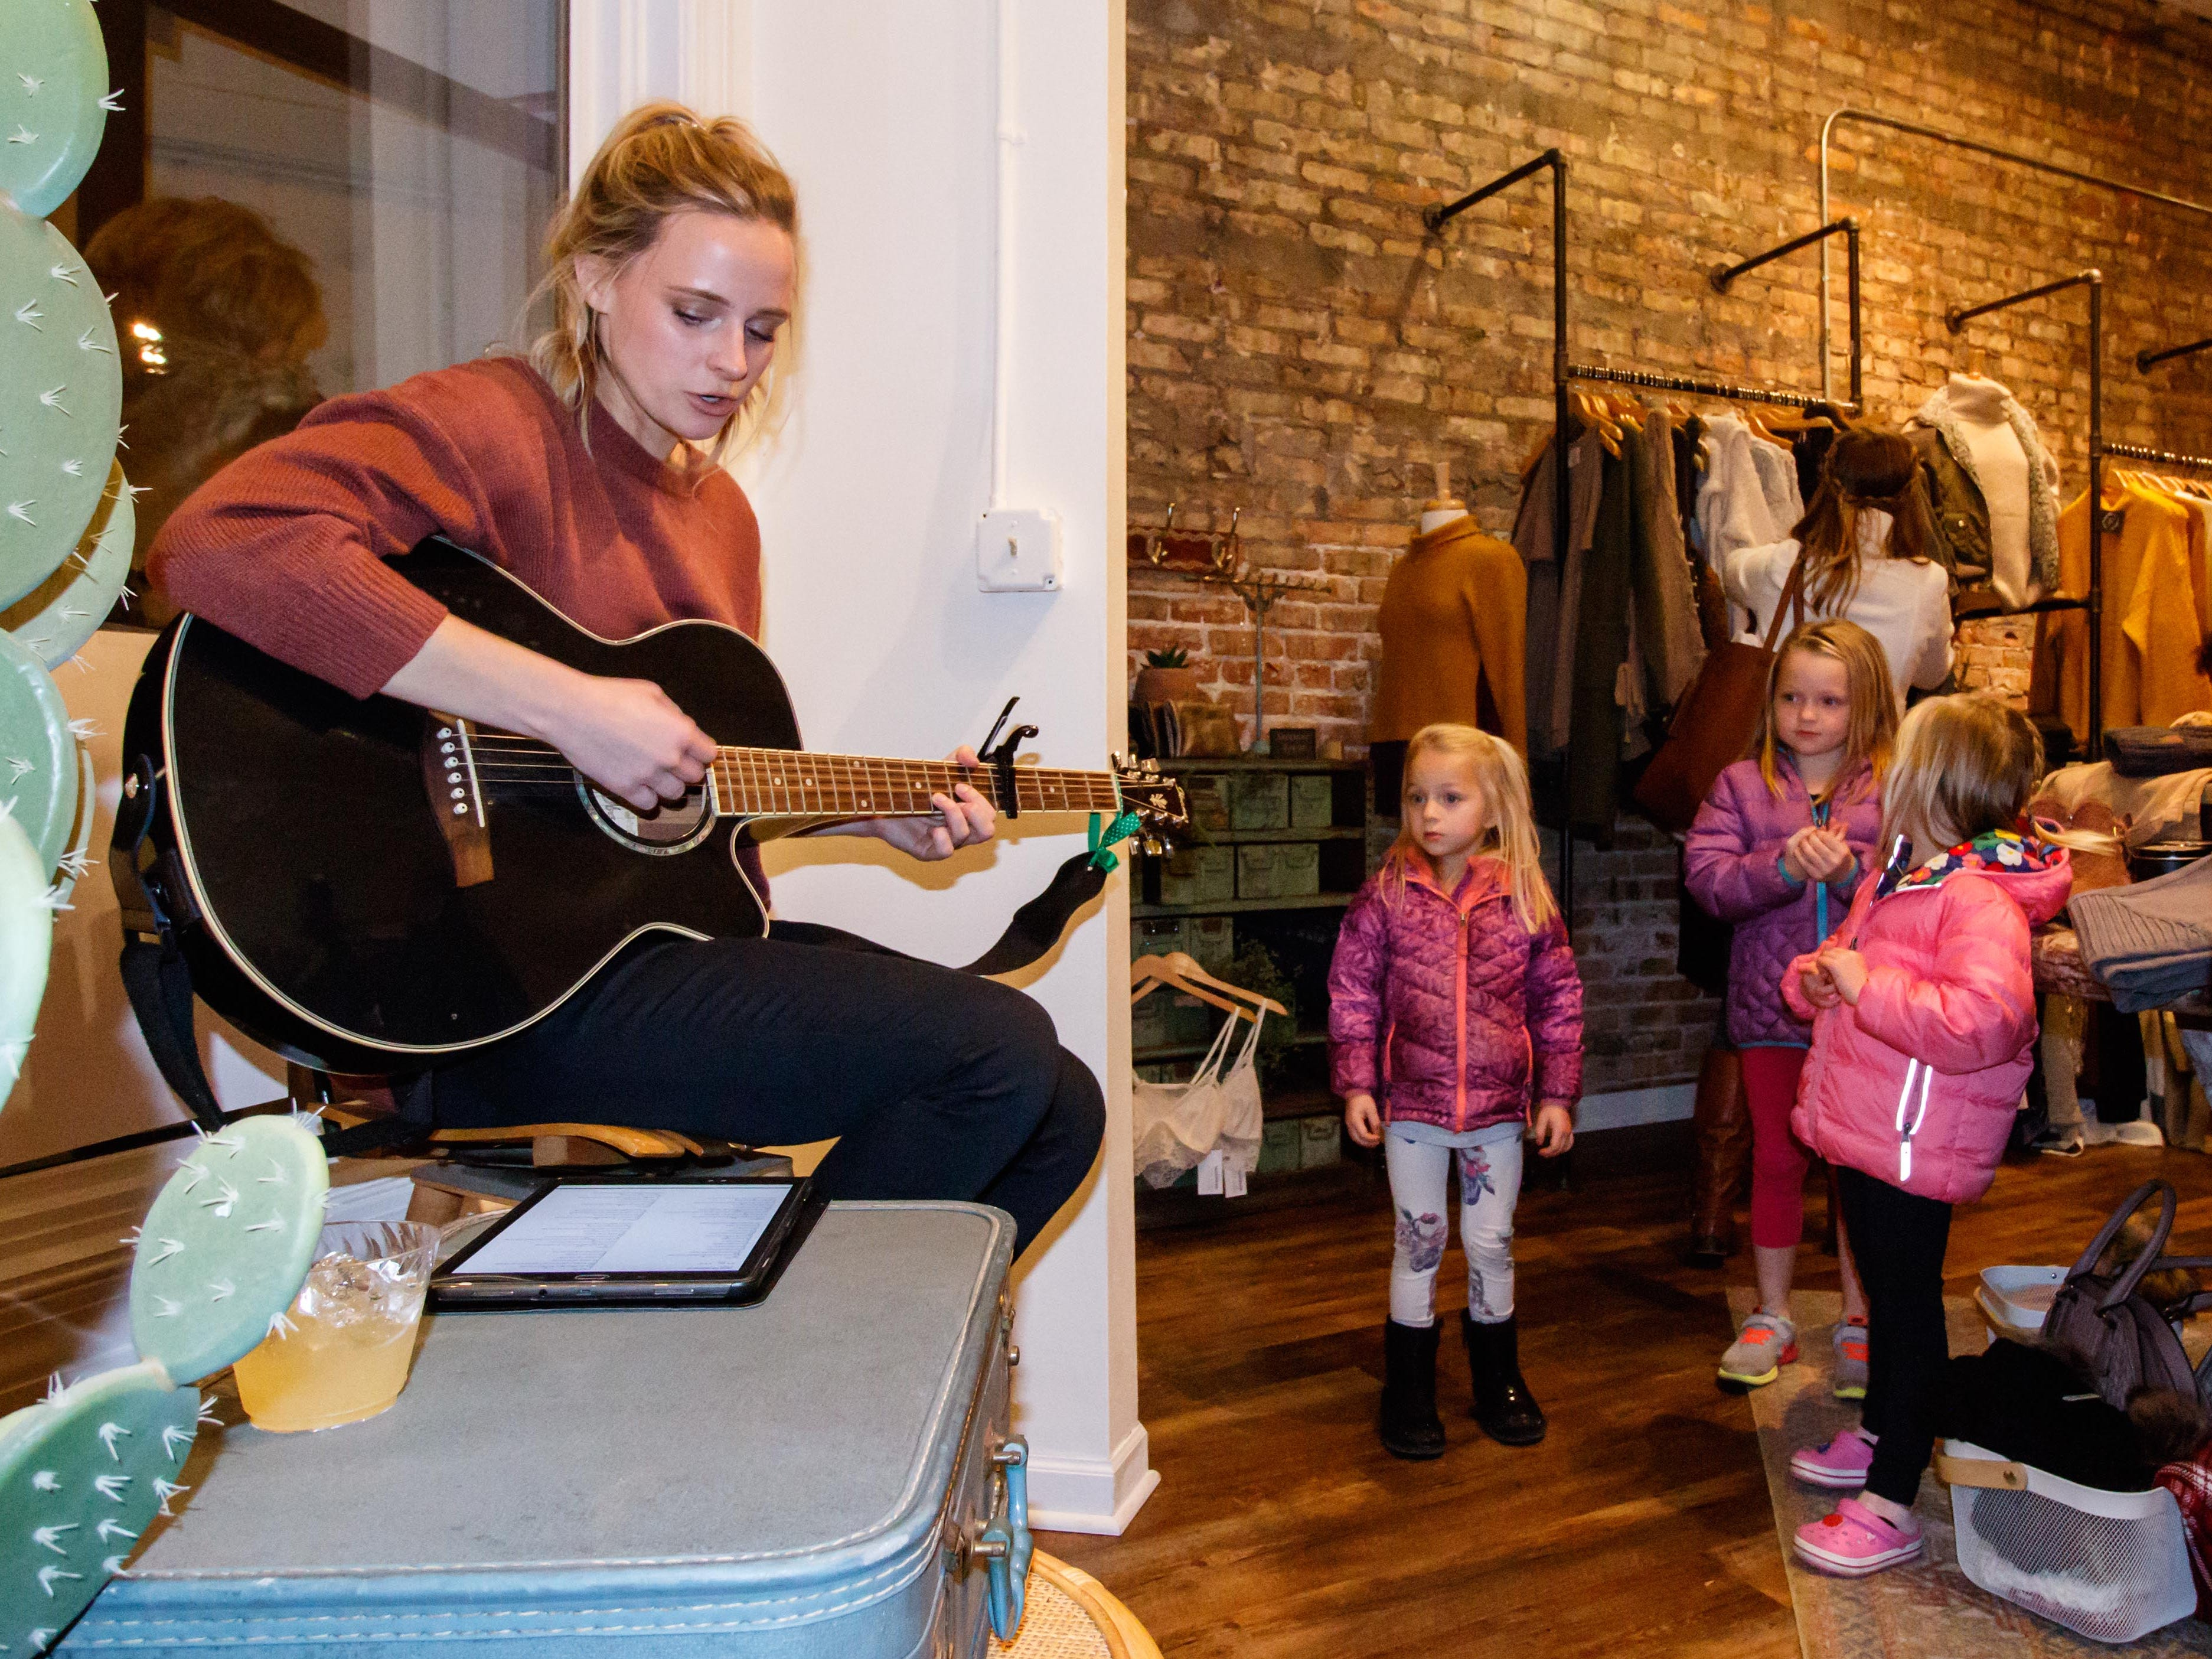 Singer songwriter Bethany Unkefer of Milwaukee entertains shoppers at Fray Boutique in Oconomowoc during the annual Fall Gallery Night event on Friday, Nov. 2, 2018.